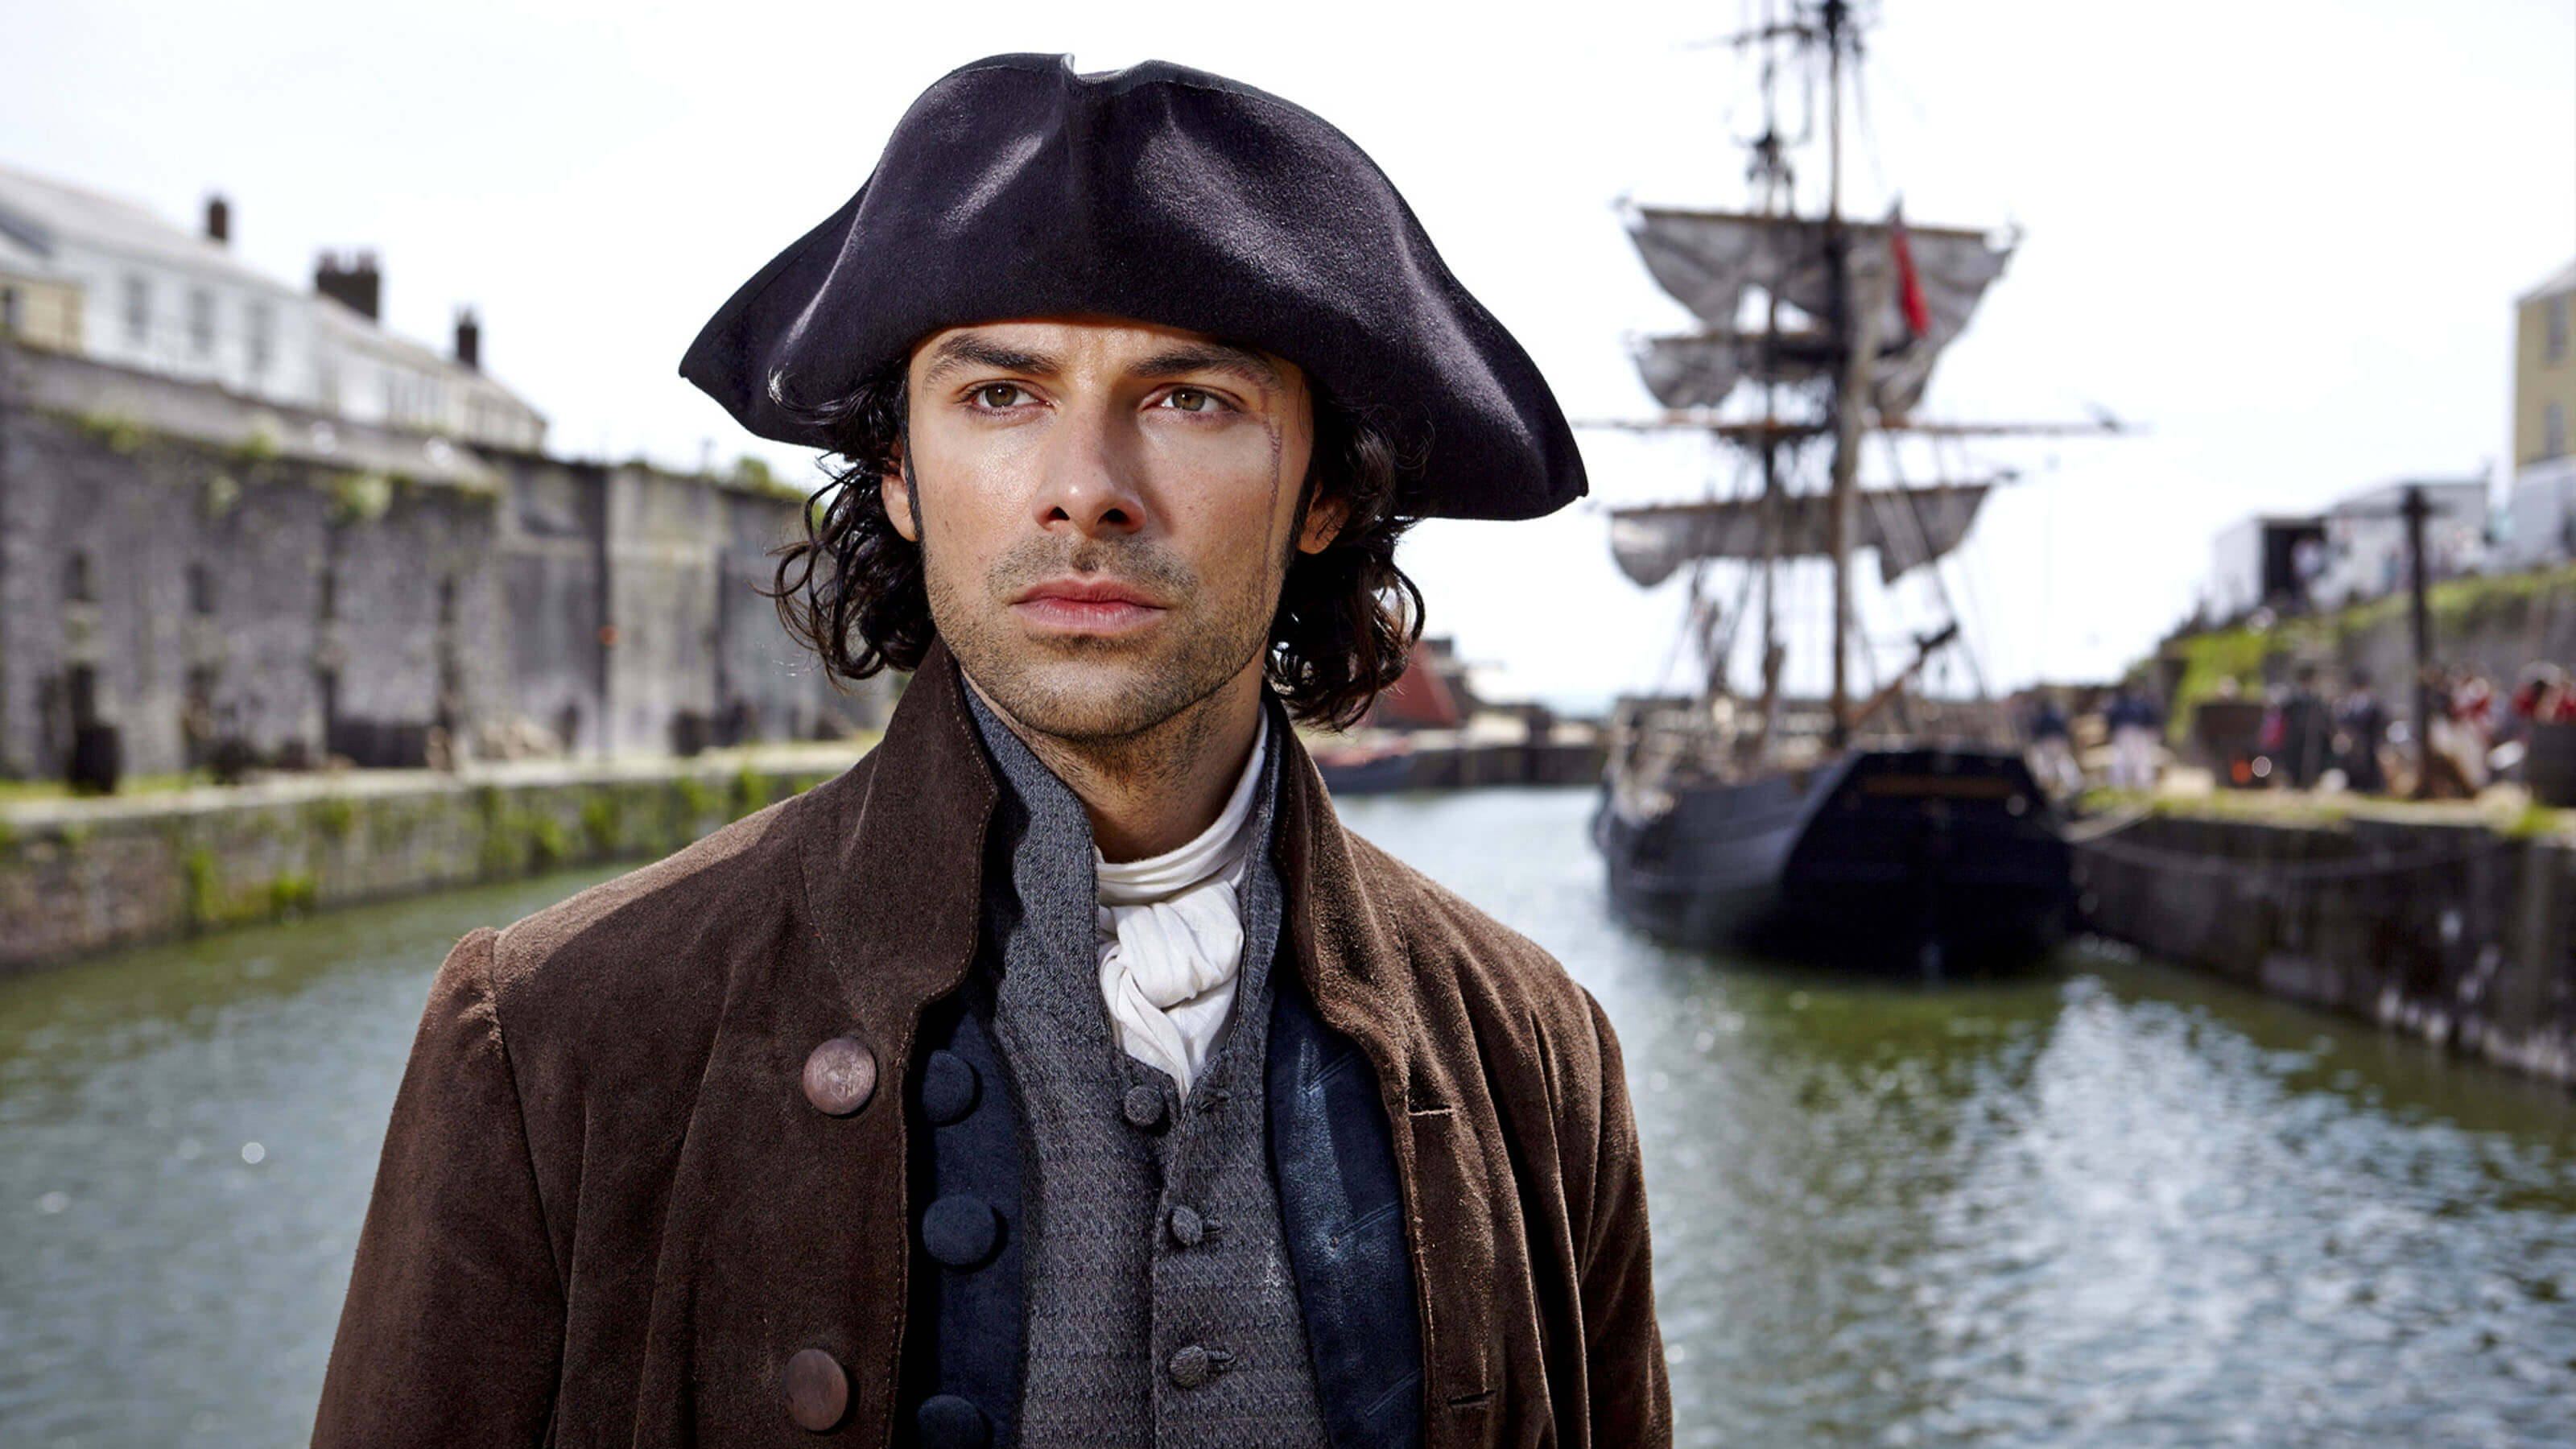 Ross Poldark: narcisme in tv-series en films